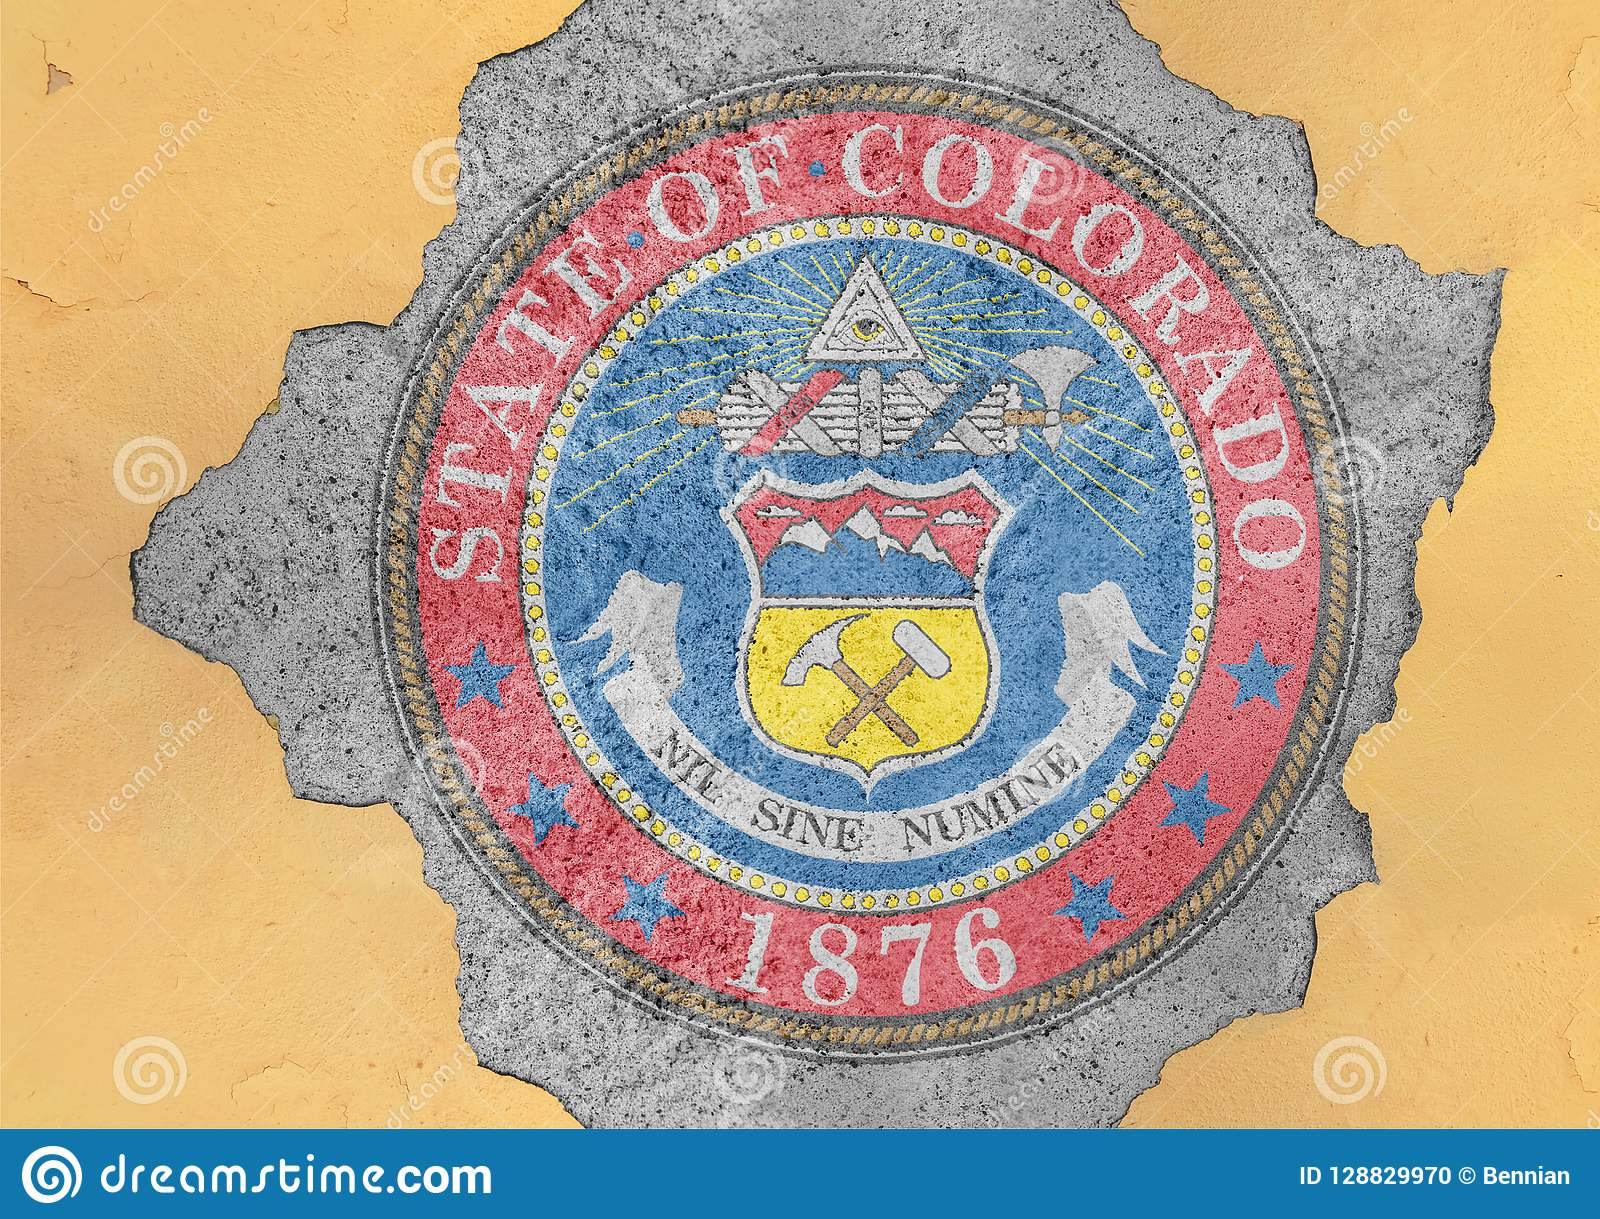 US state Colorado seal flag painted on concrete hole and cracked wall